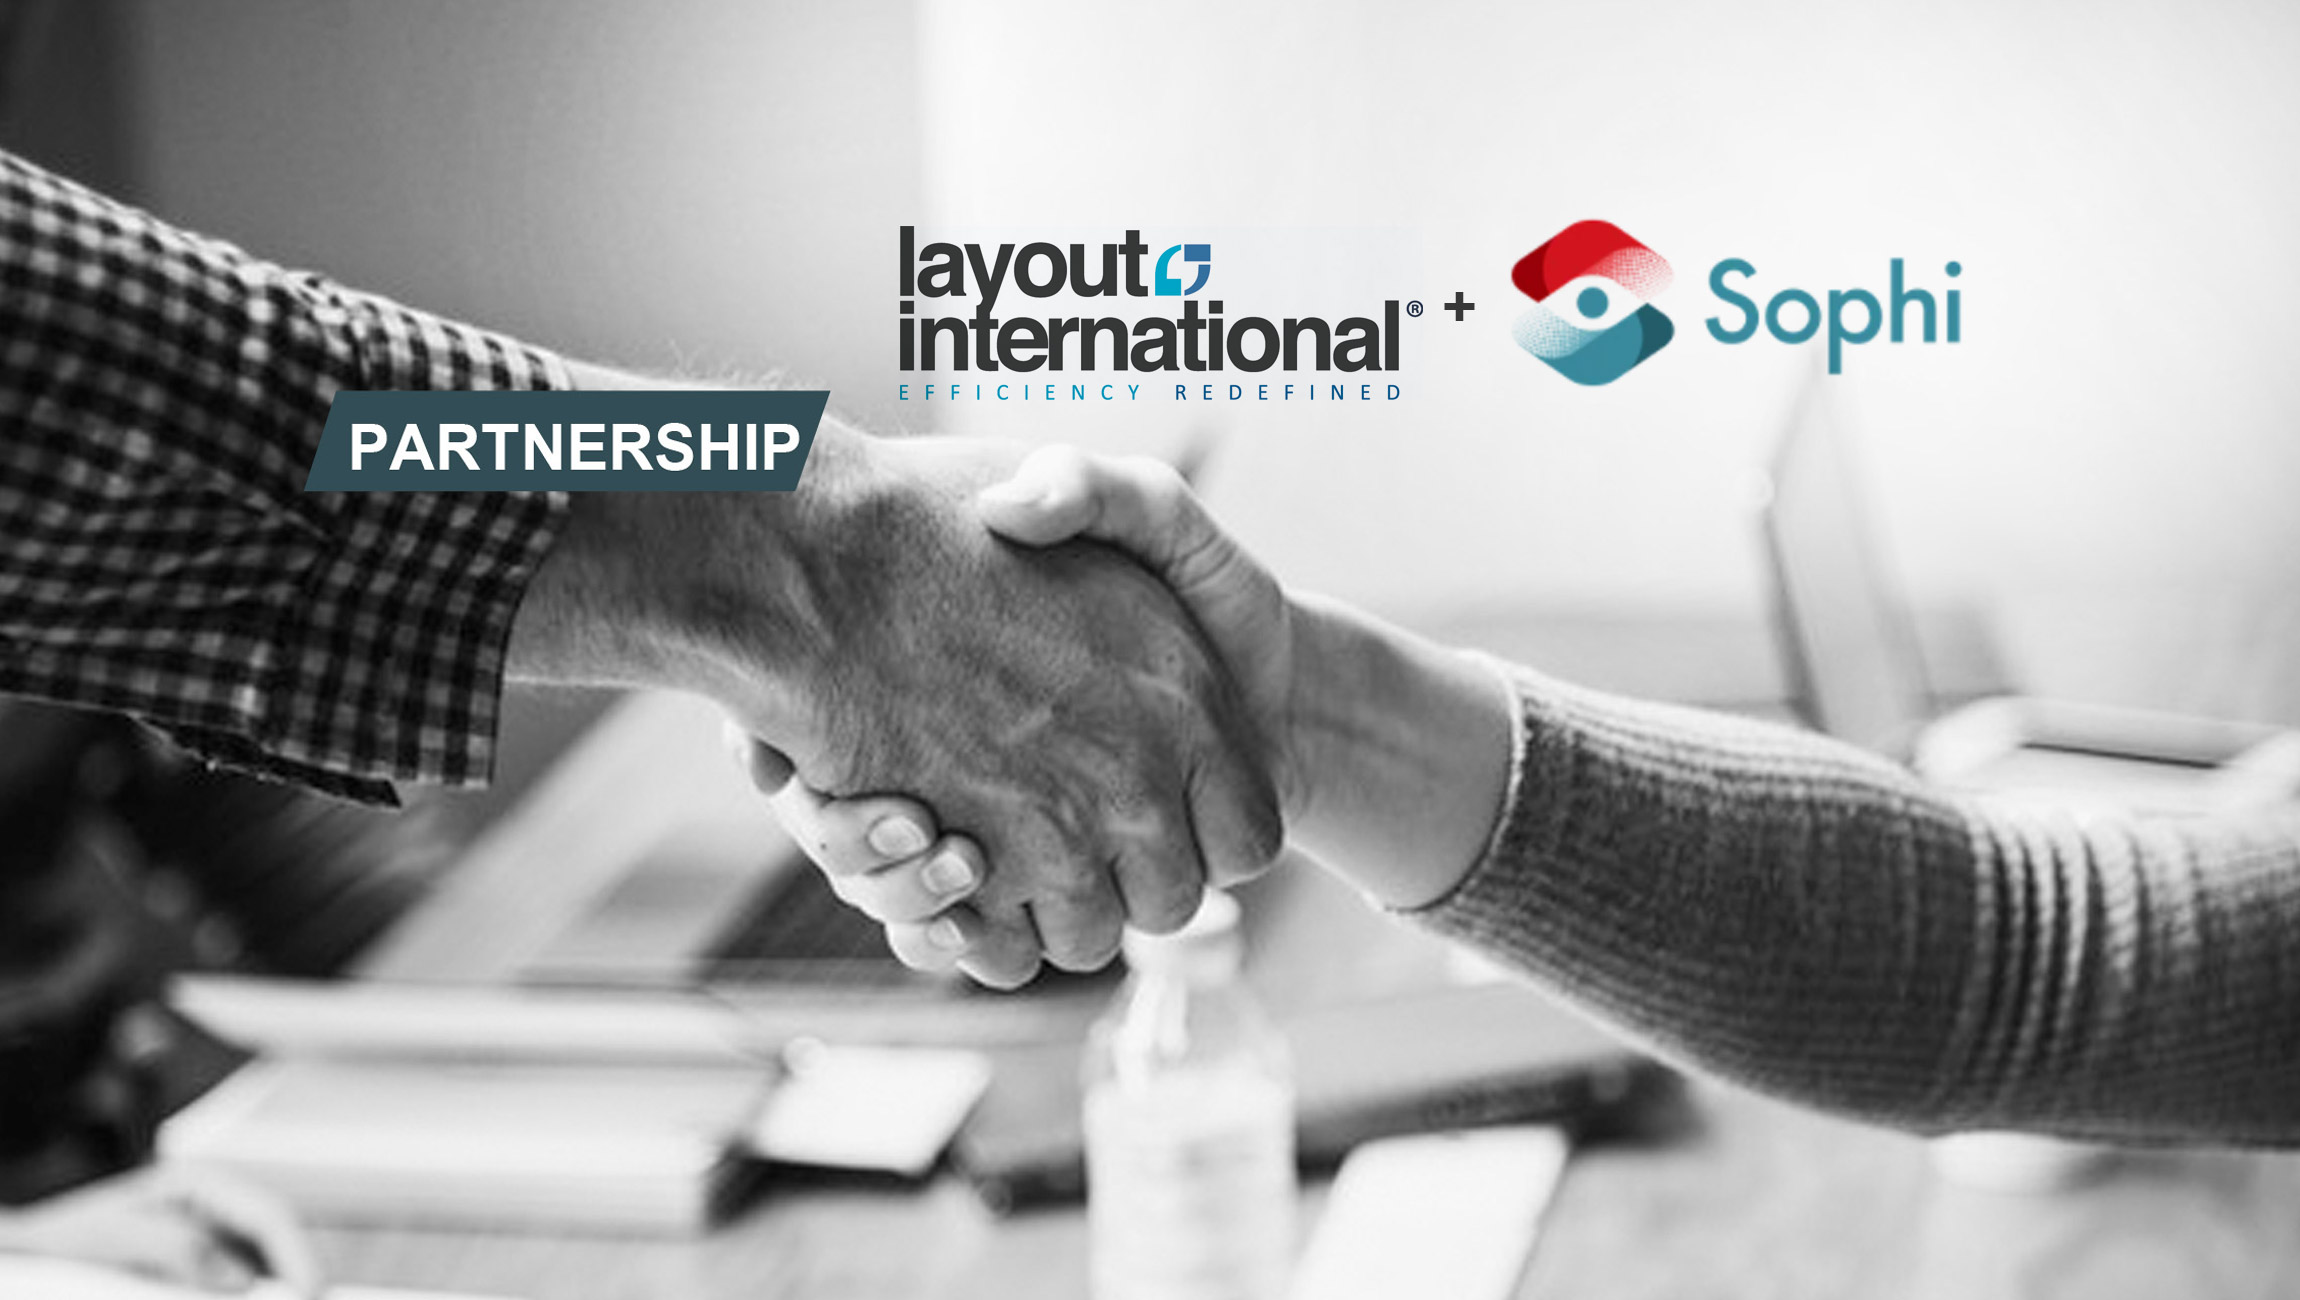 Layout International Partners with Sophi.io to Fully Automate Print Production